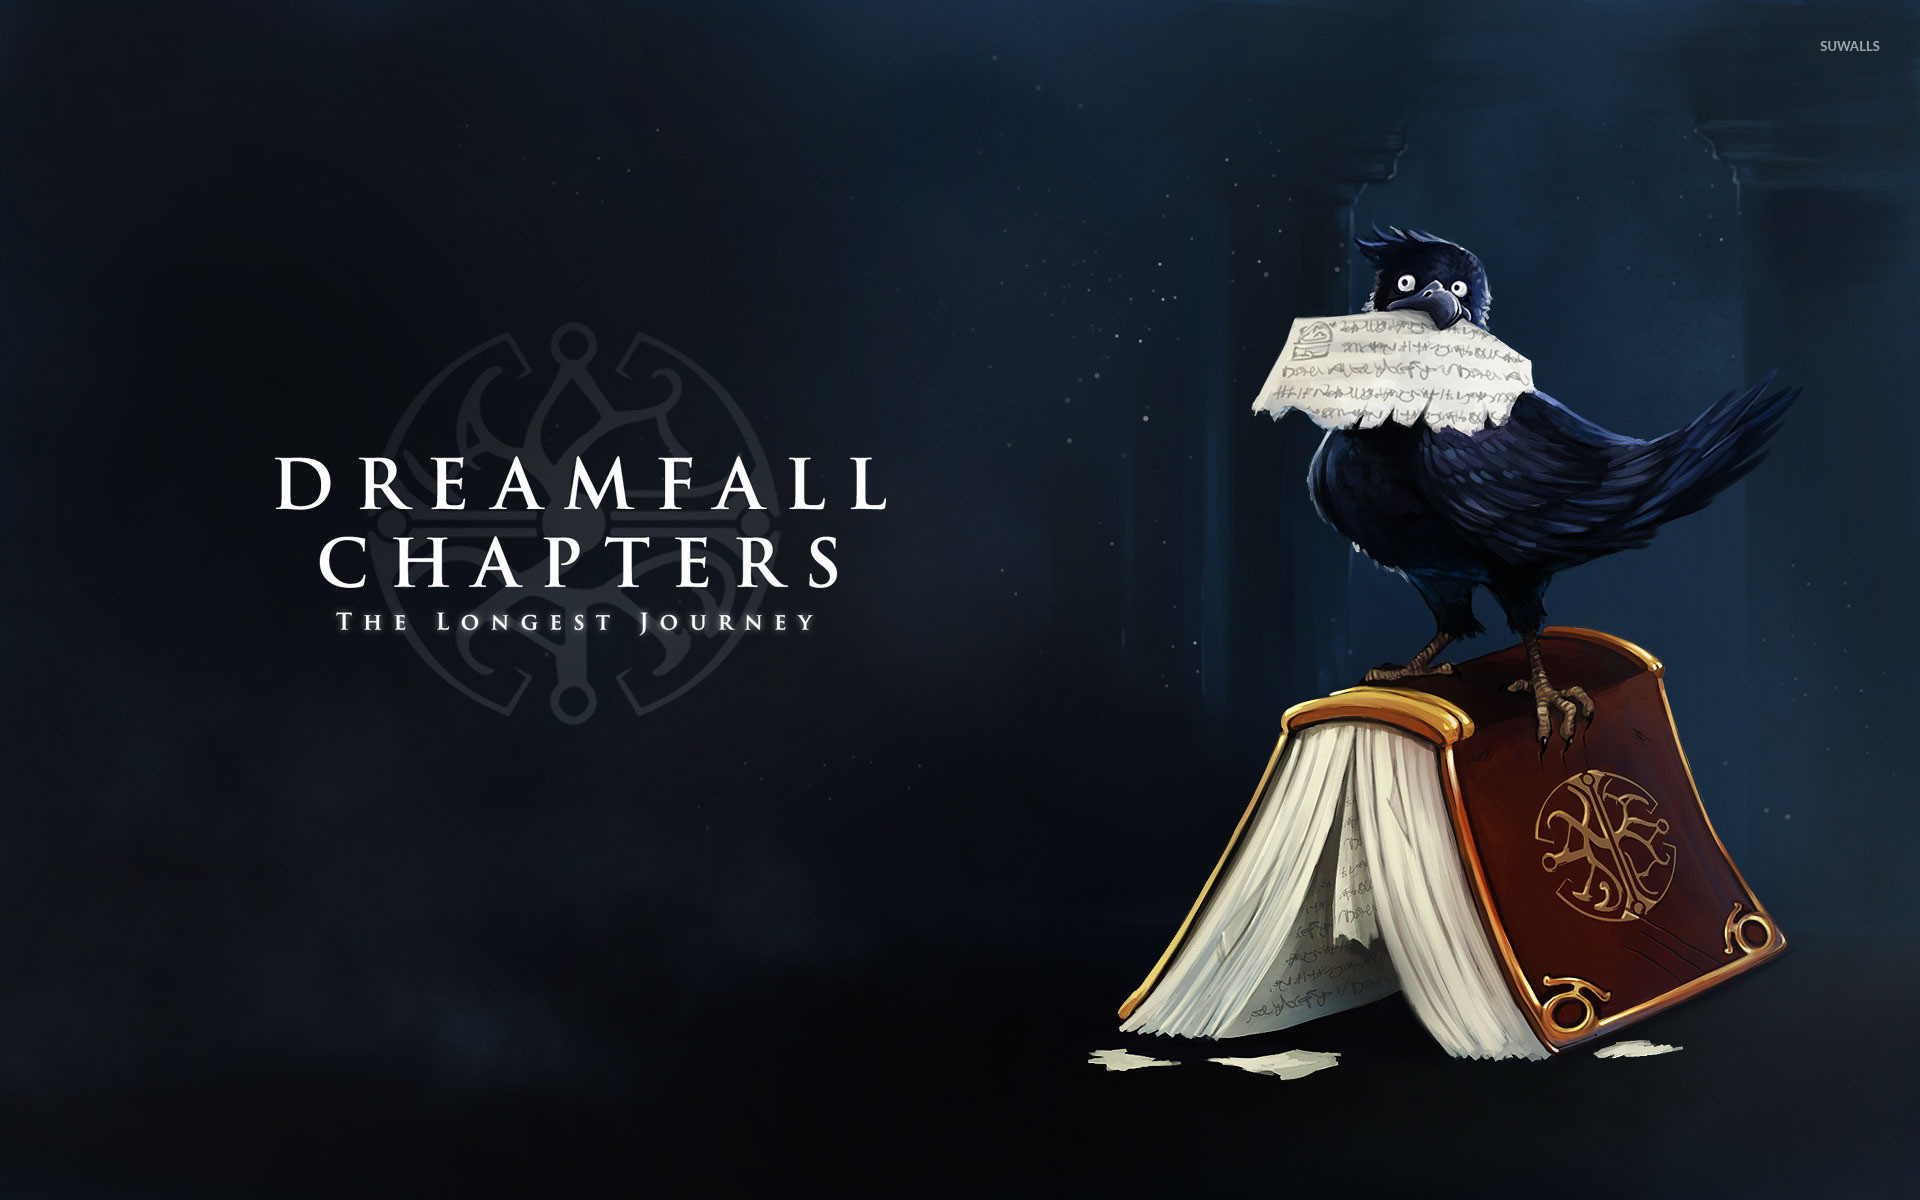 1920x1200  Dreamfall Chapters: The Longest Journey wallpapers photo |  Dreamfall Chapters: The Longest Journey wallpapers HD | Pinterest |  Wallpaper and Hd ...